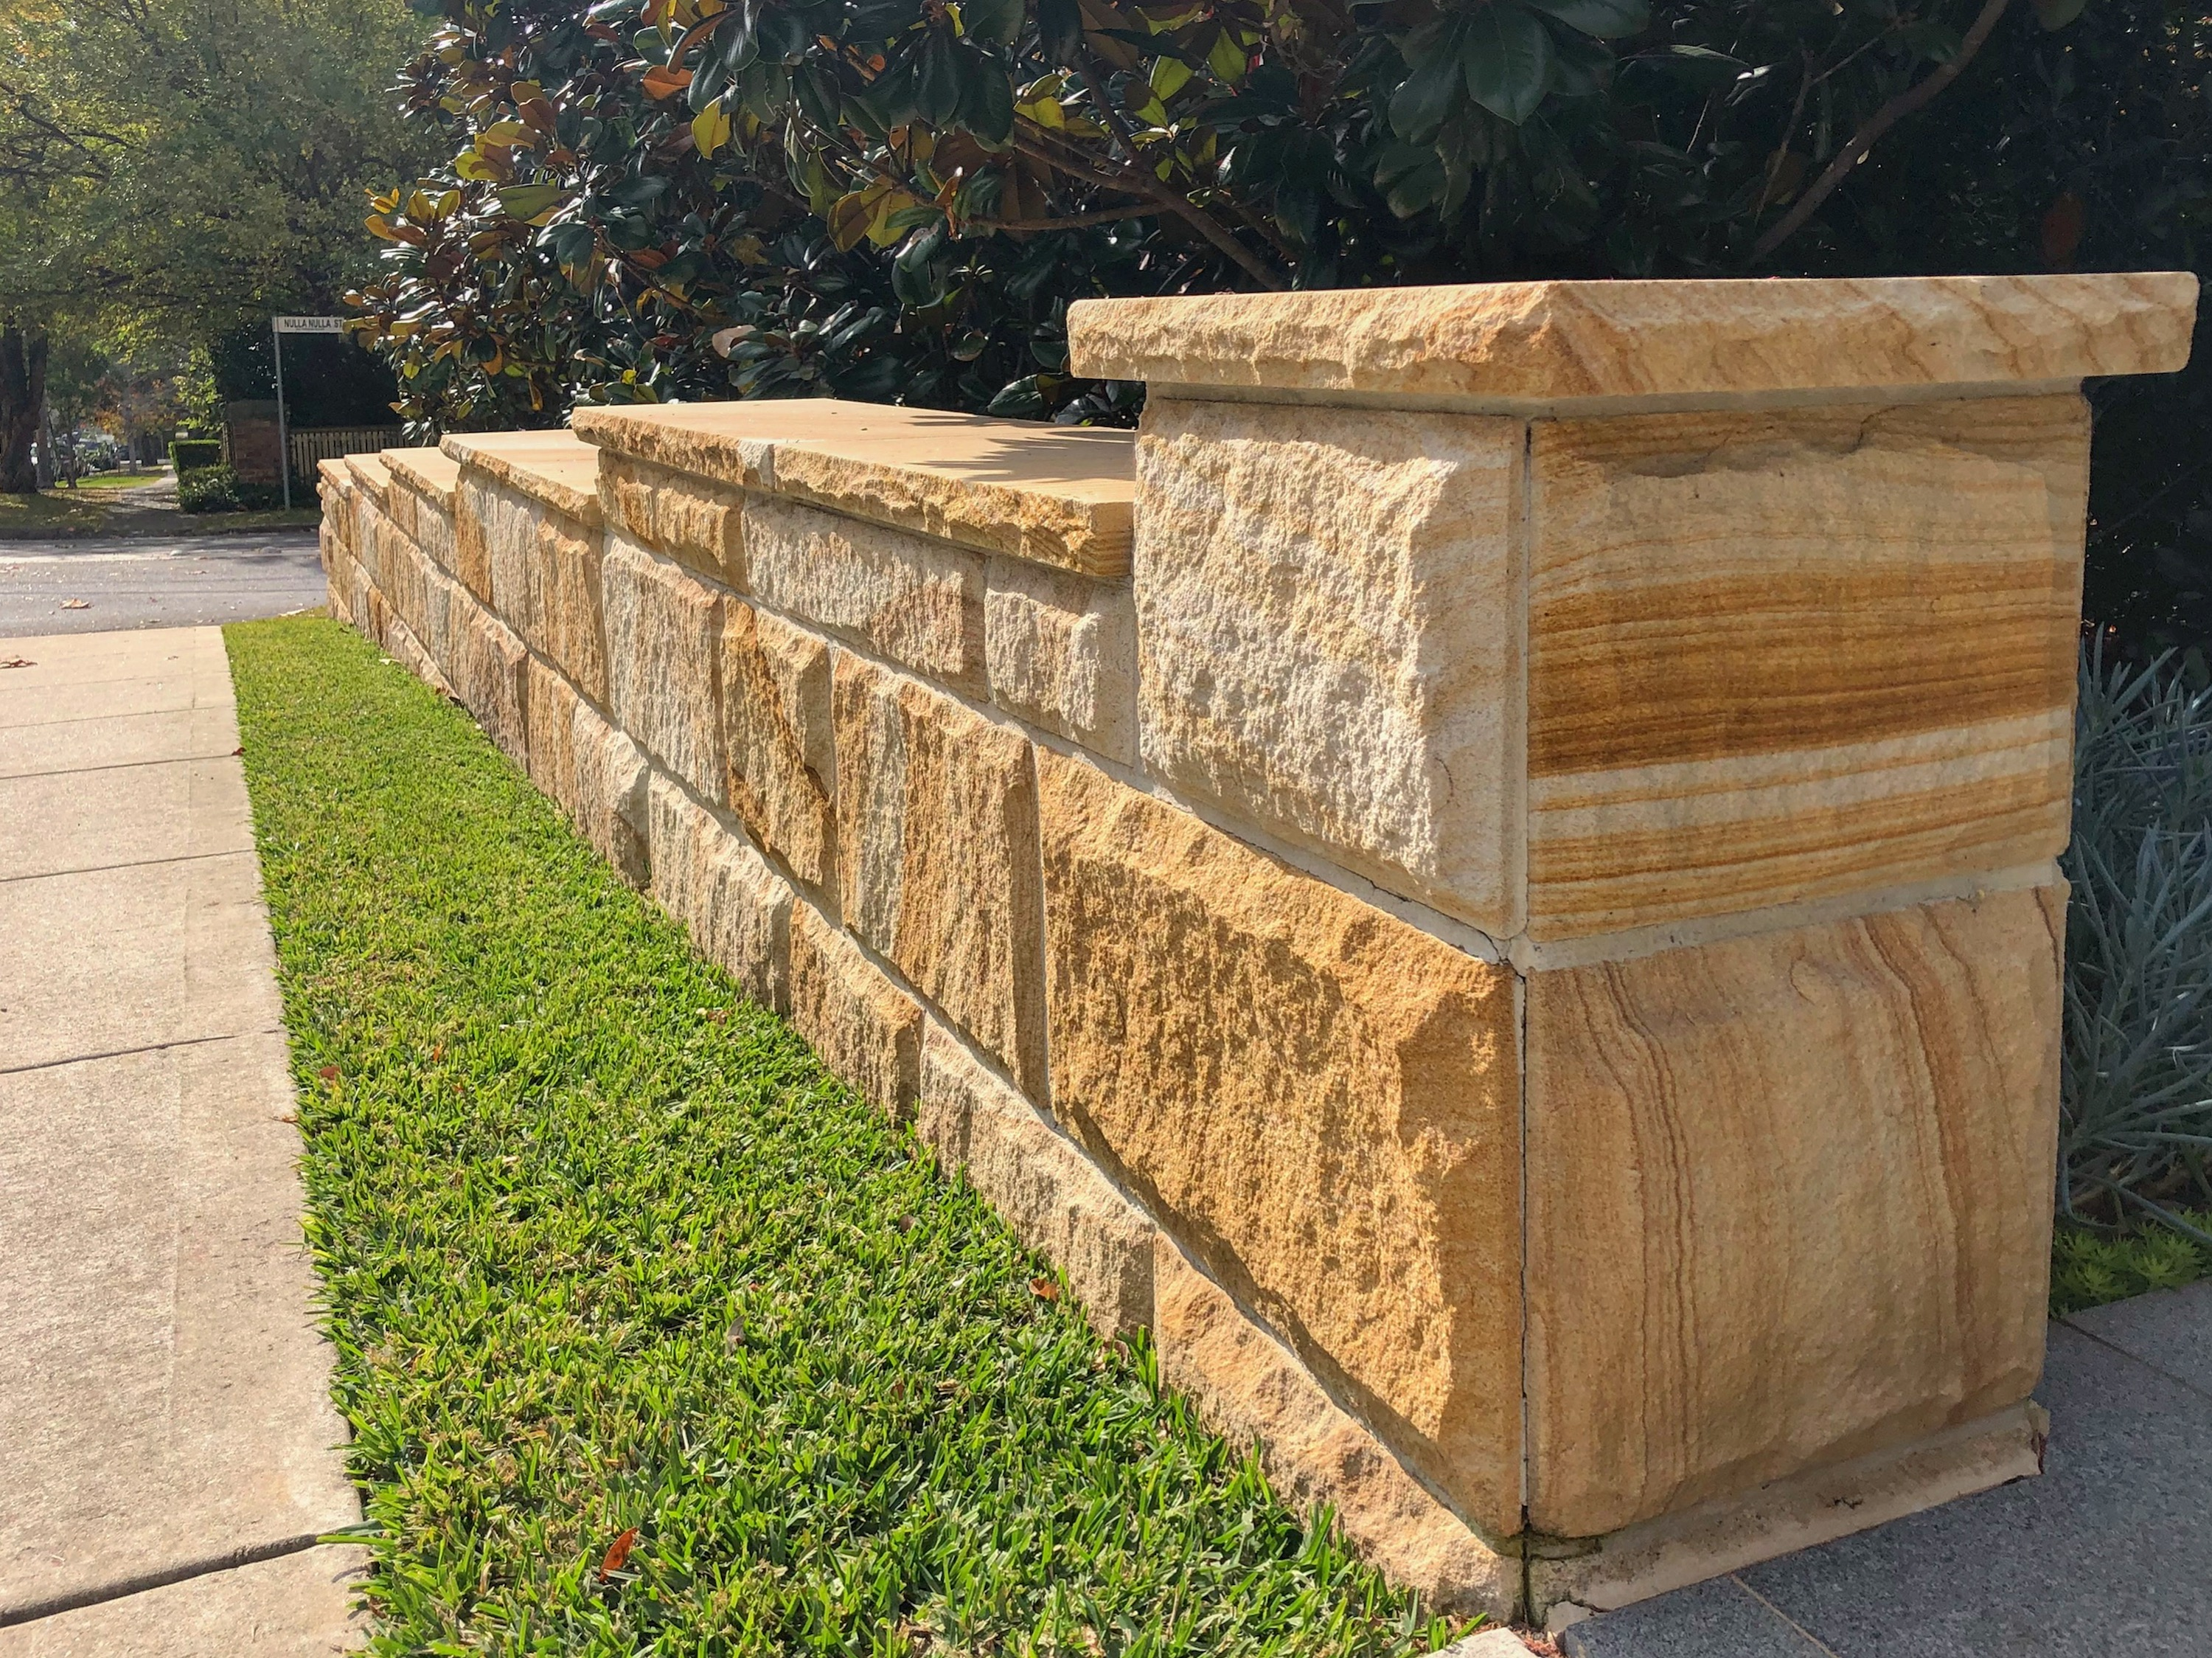 Landscape design using rock face sandstone walling and capping stone